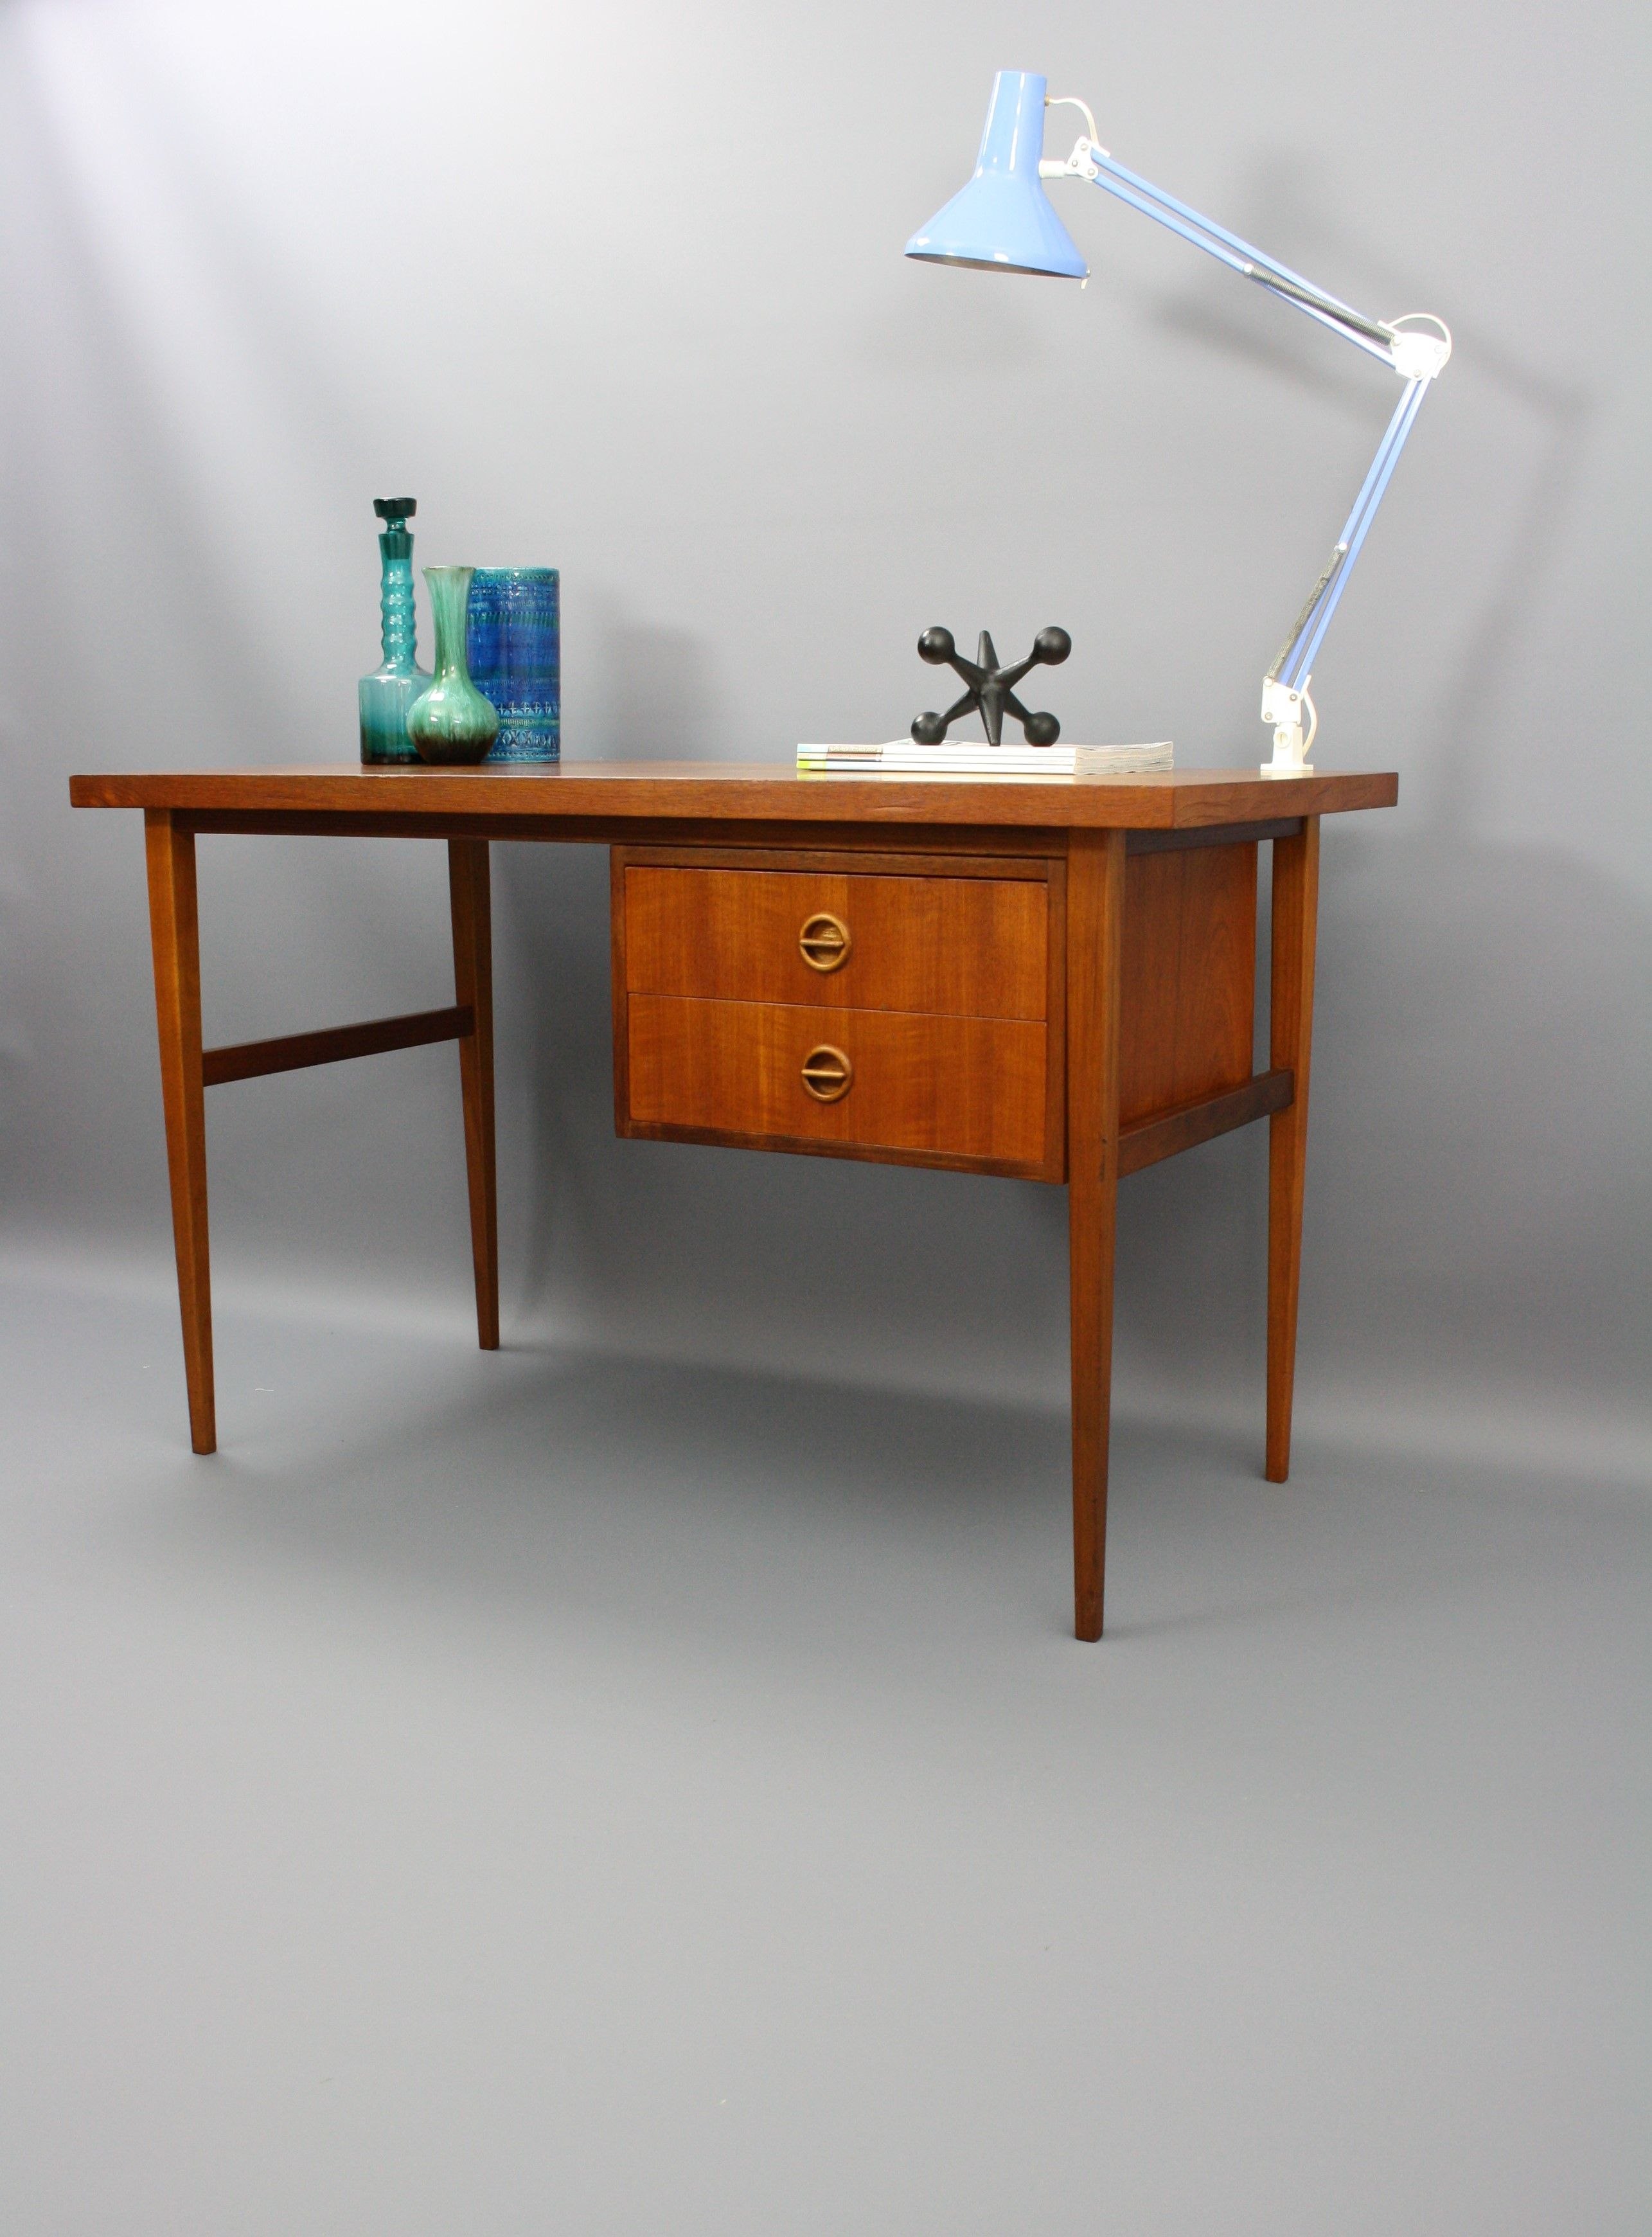 custom standing desk kidney shaped mid parker furniture australia mid century teak retro vintage r31 shaped